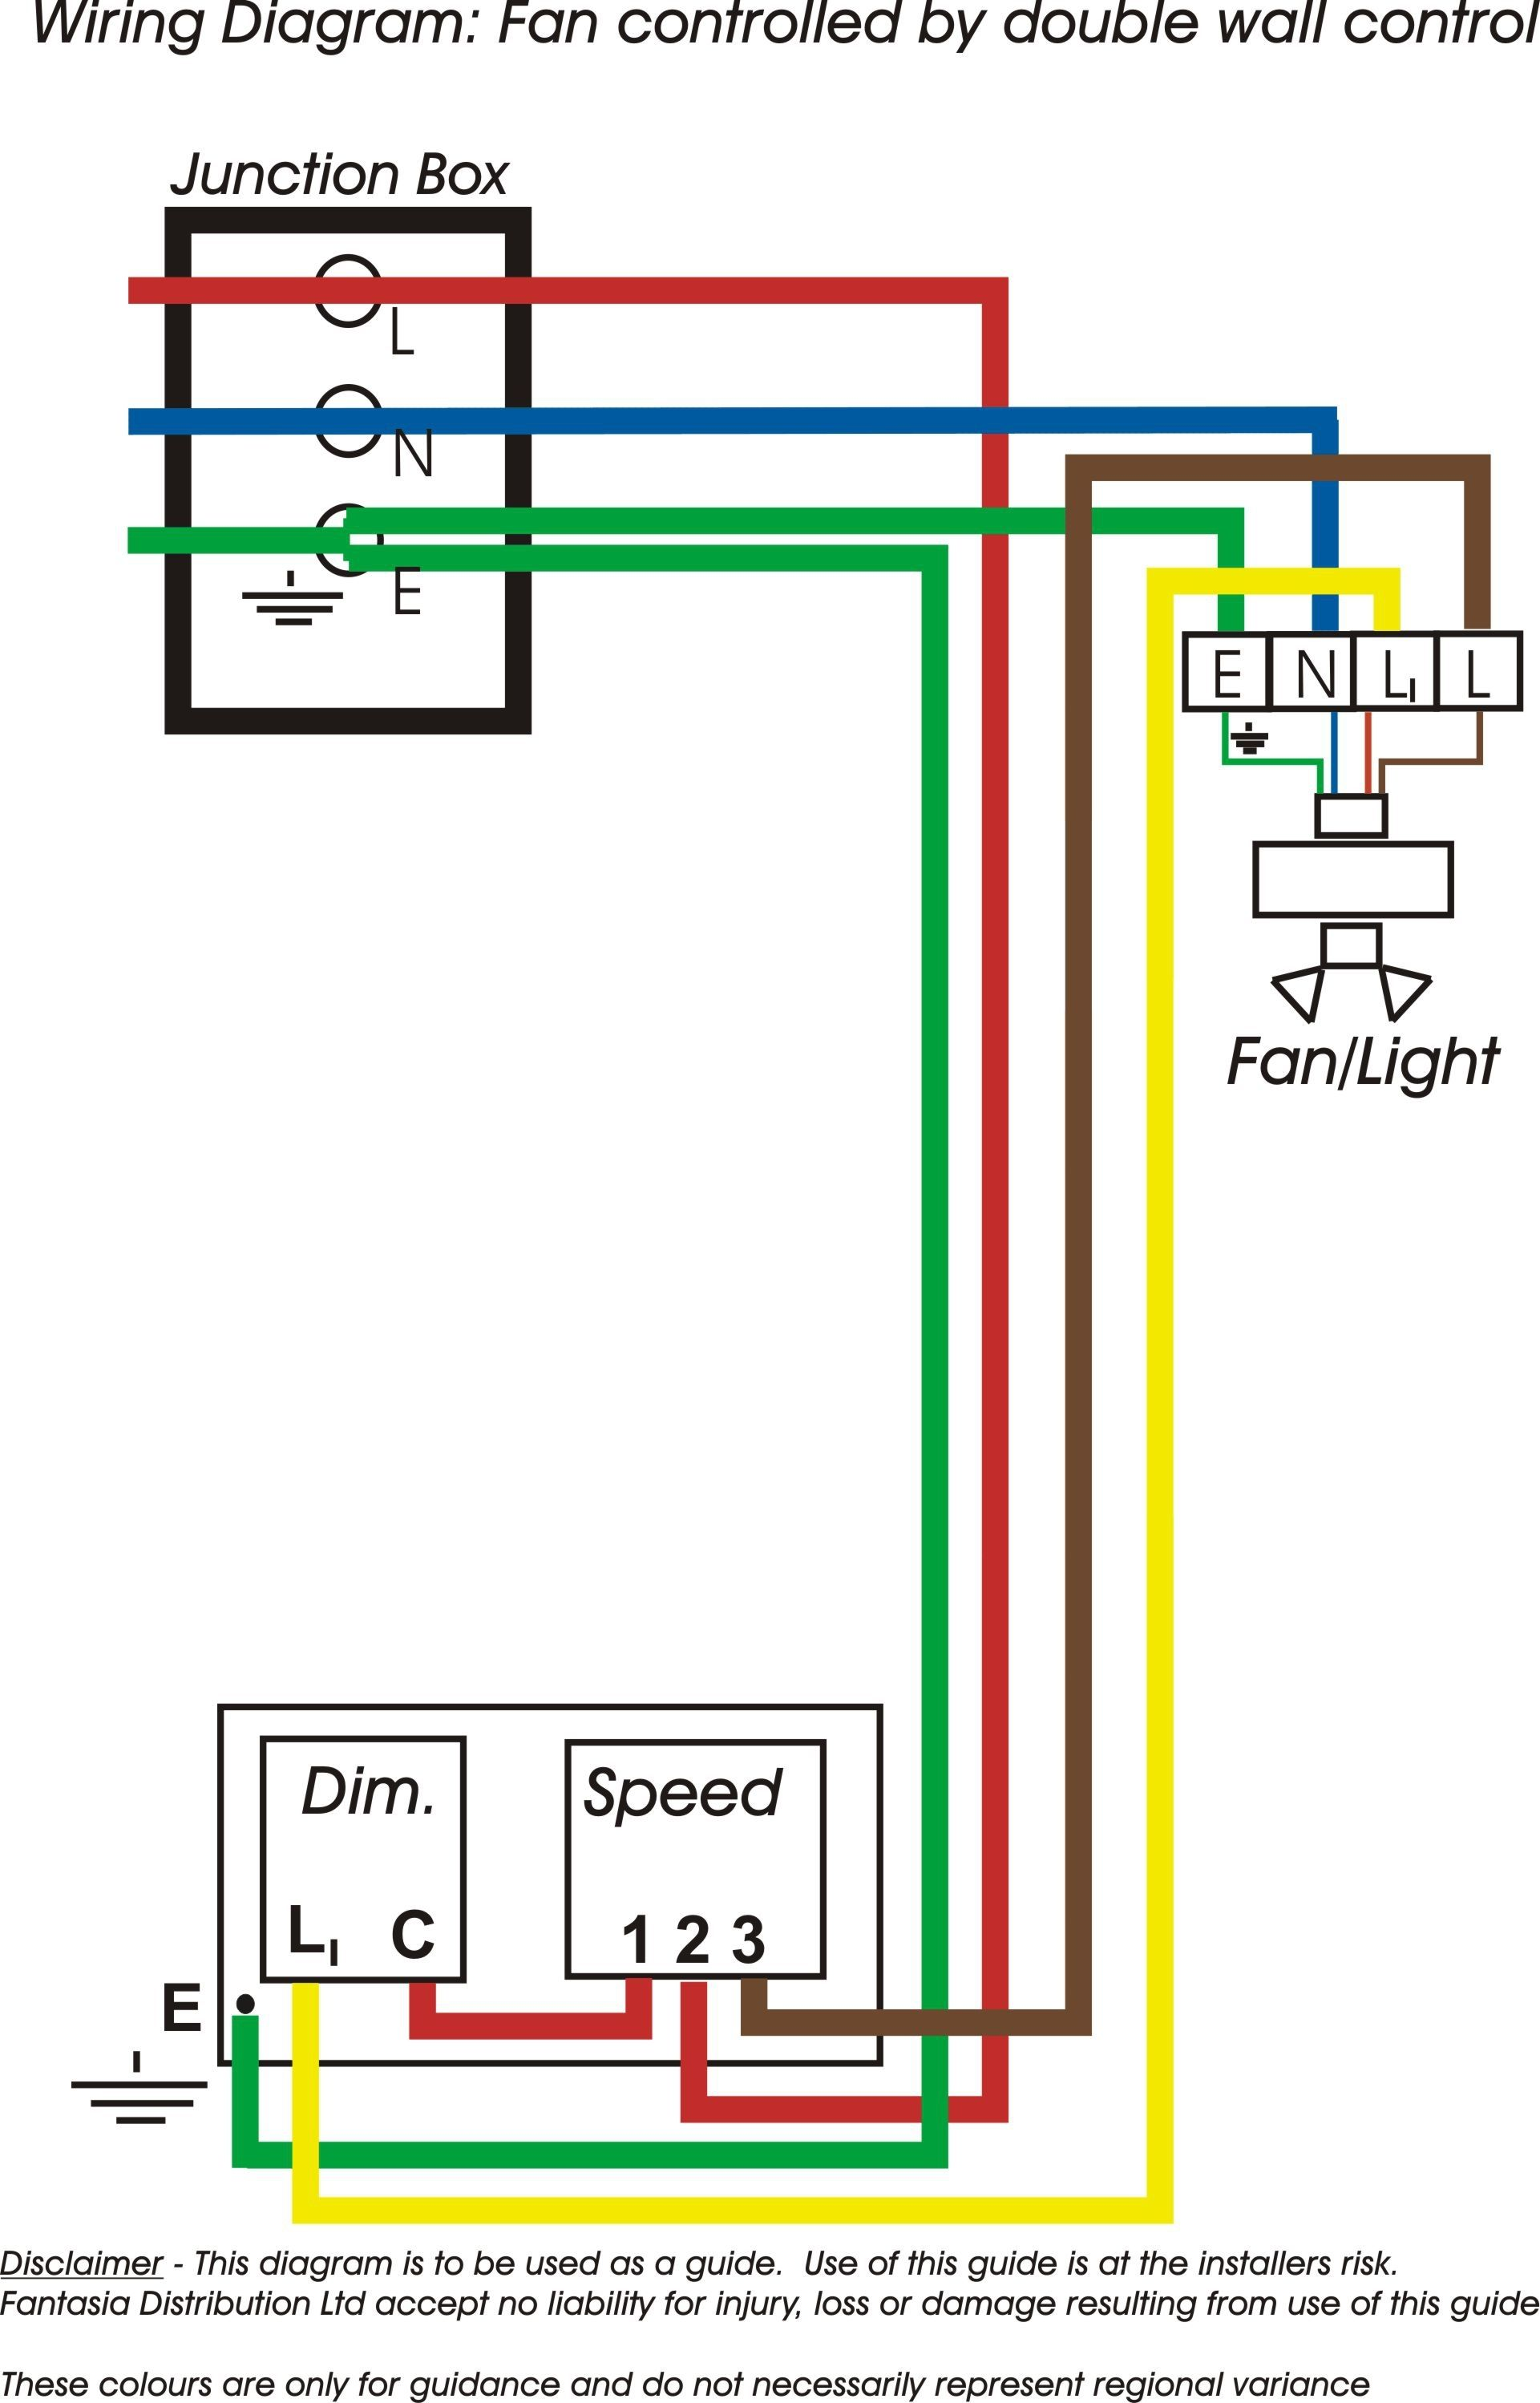 ceiling fan wiring diagram double switch 6 to 12 volt conversion for and light electrical in 2019